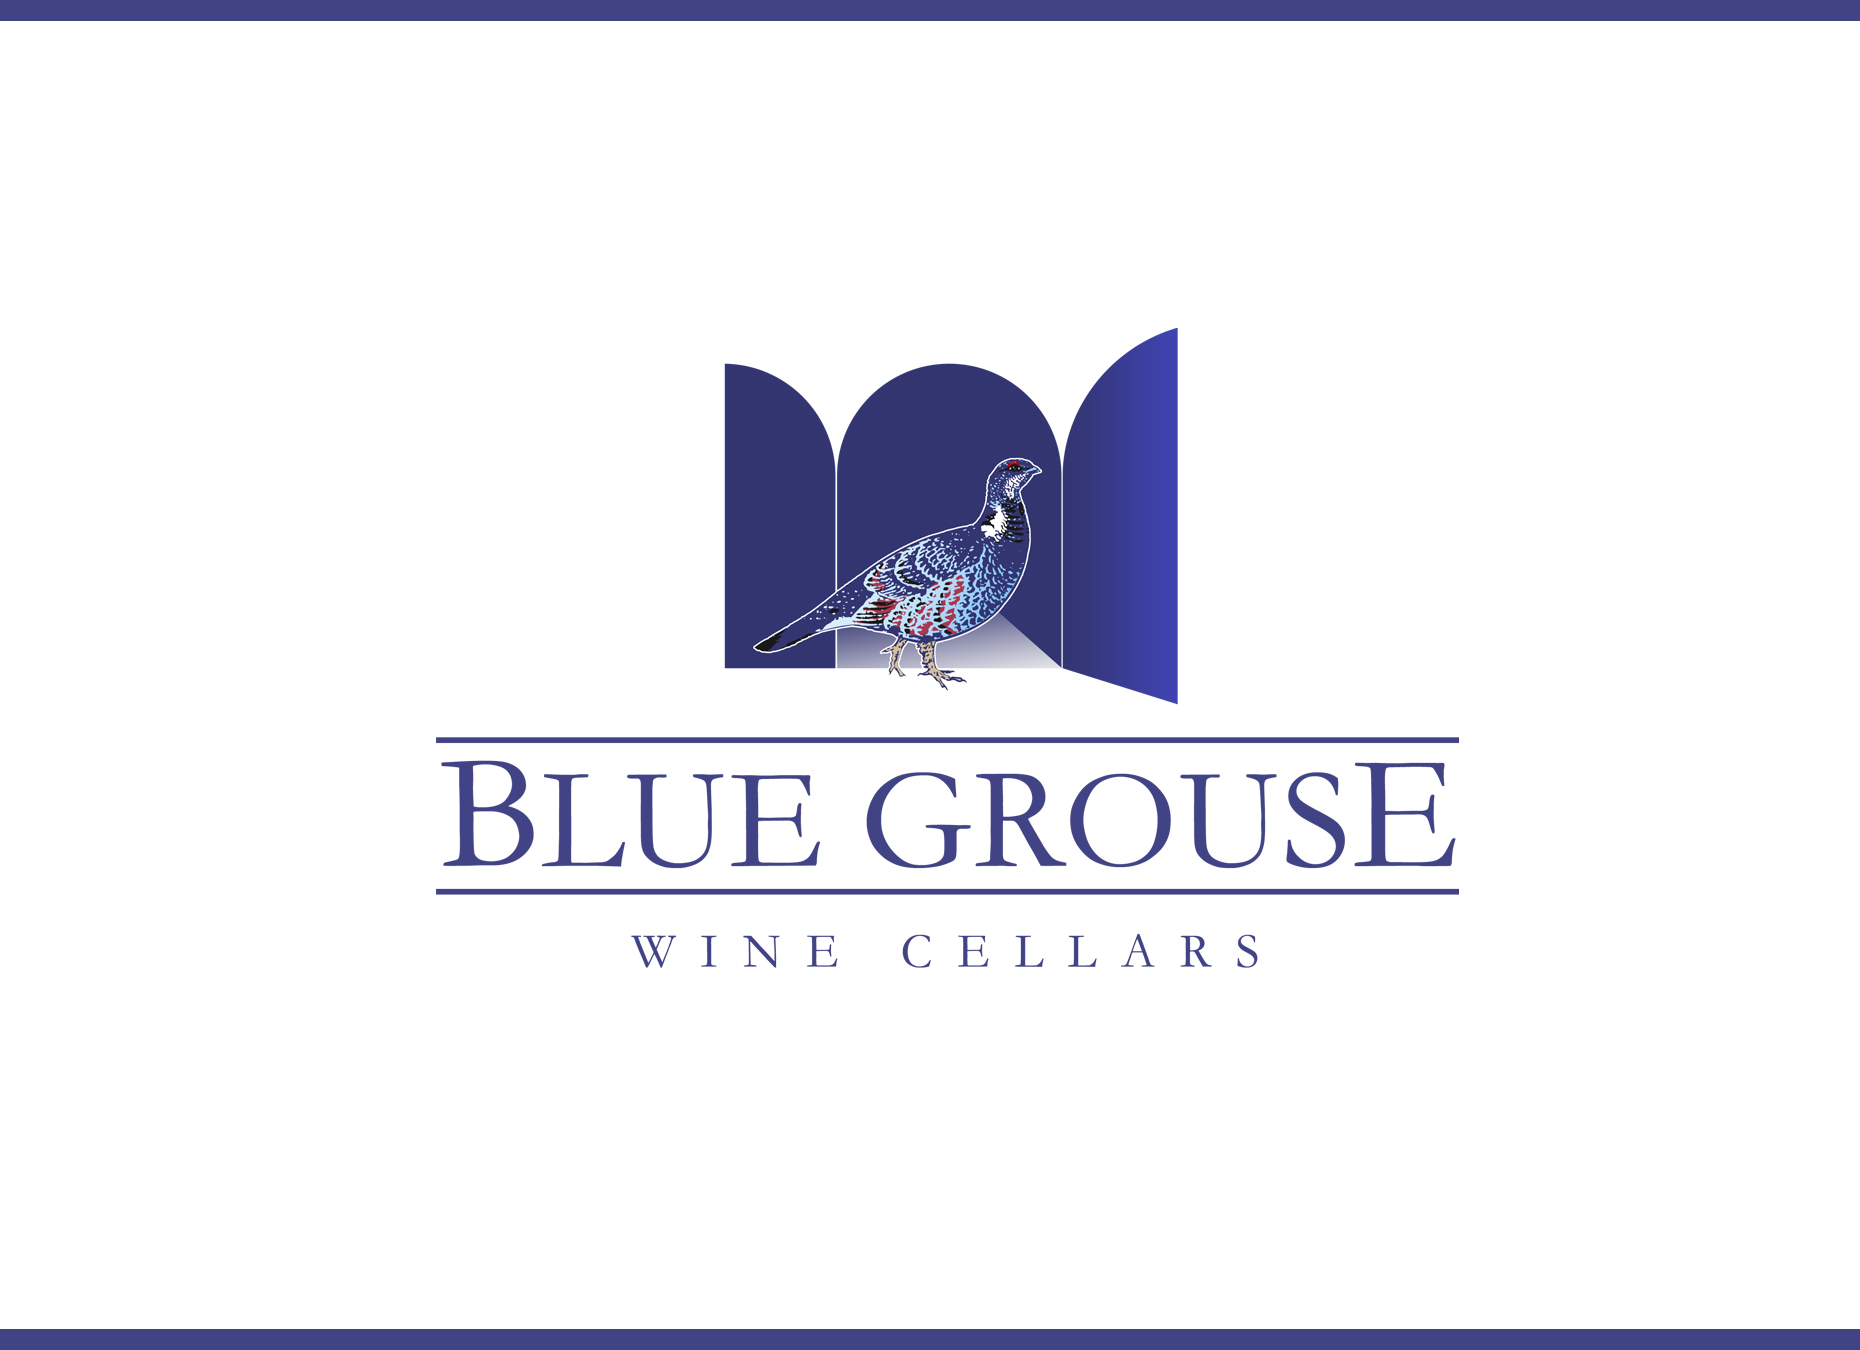 Logo Design by omARTist - Entry No. 136 in the Logo Design Contest Creative Logo Design for Blue Grouse Wine Cellars.